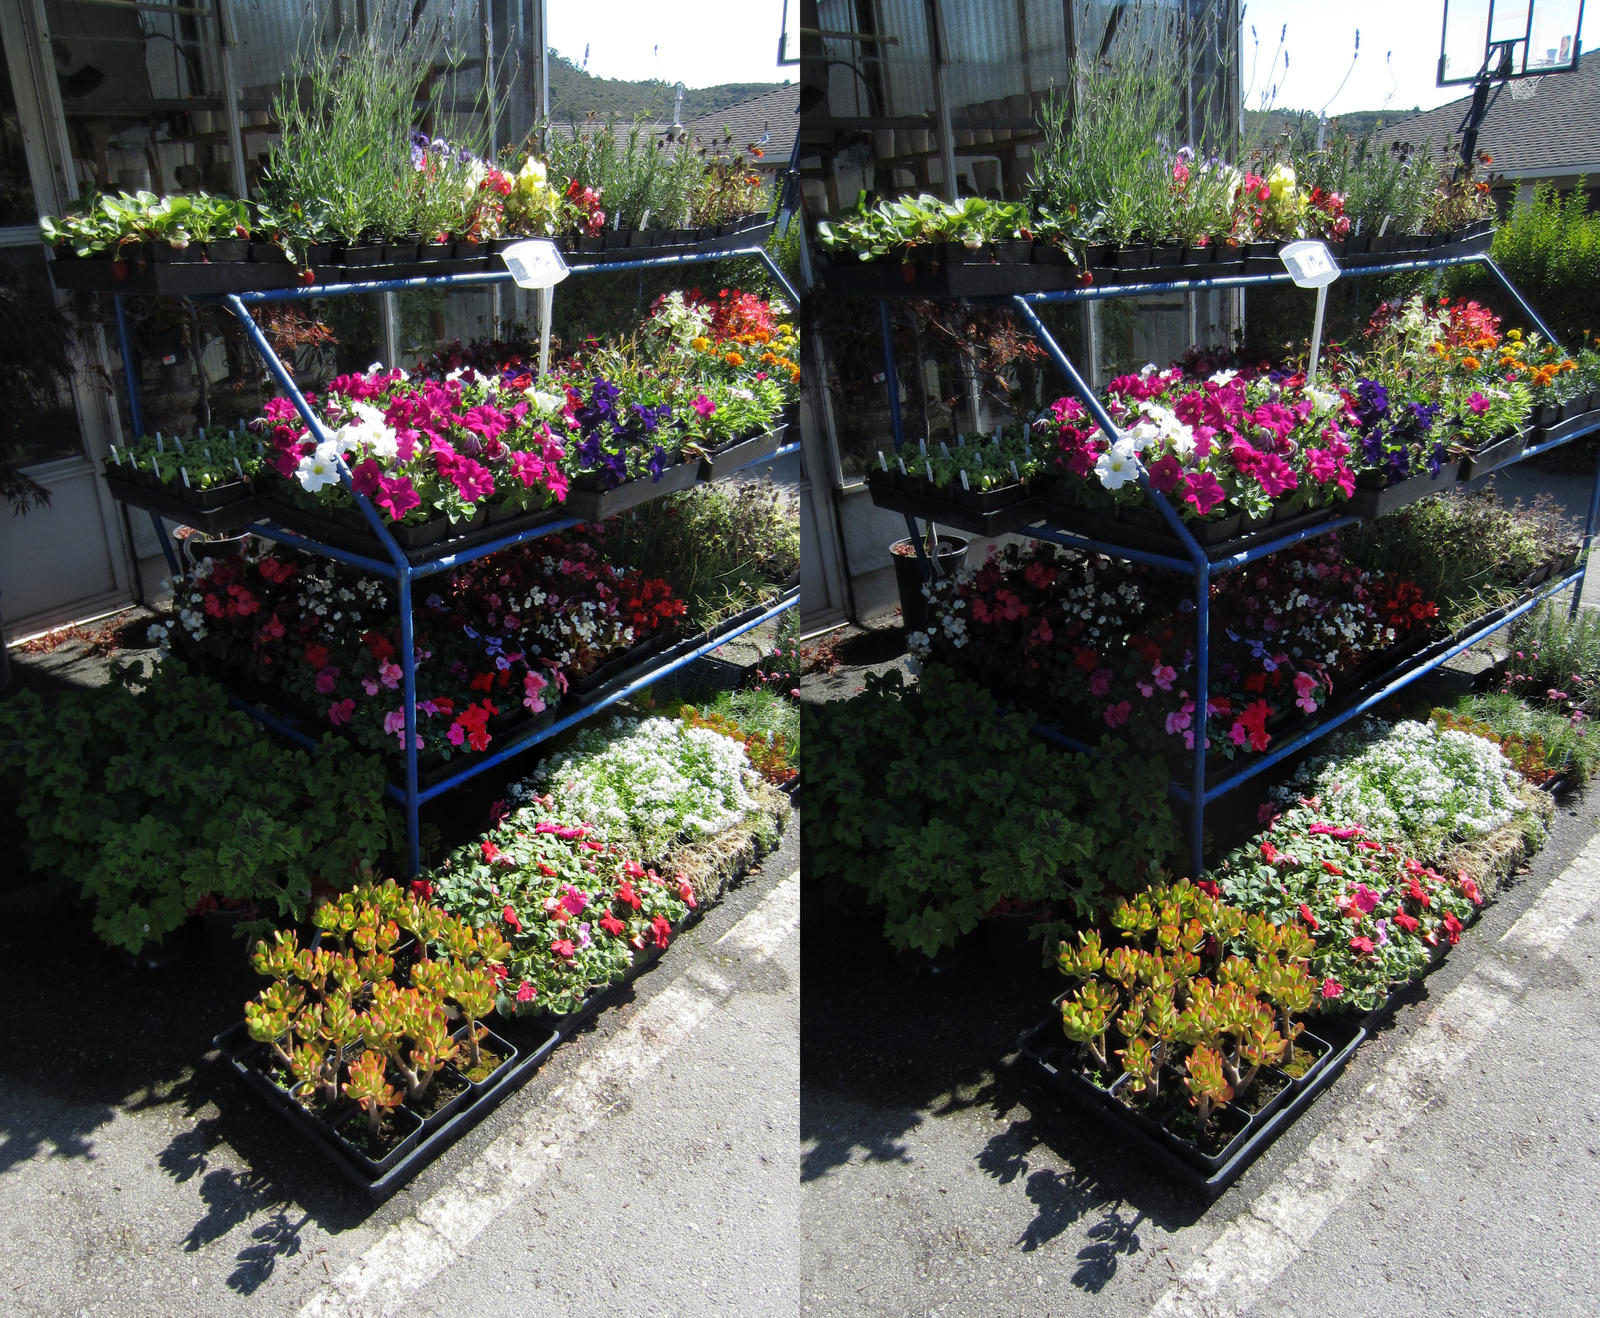 Stereograph - Flower Shop by alanbecker